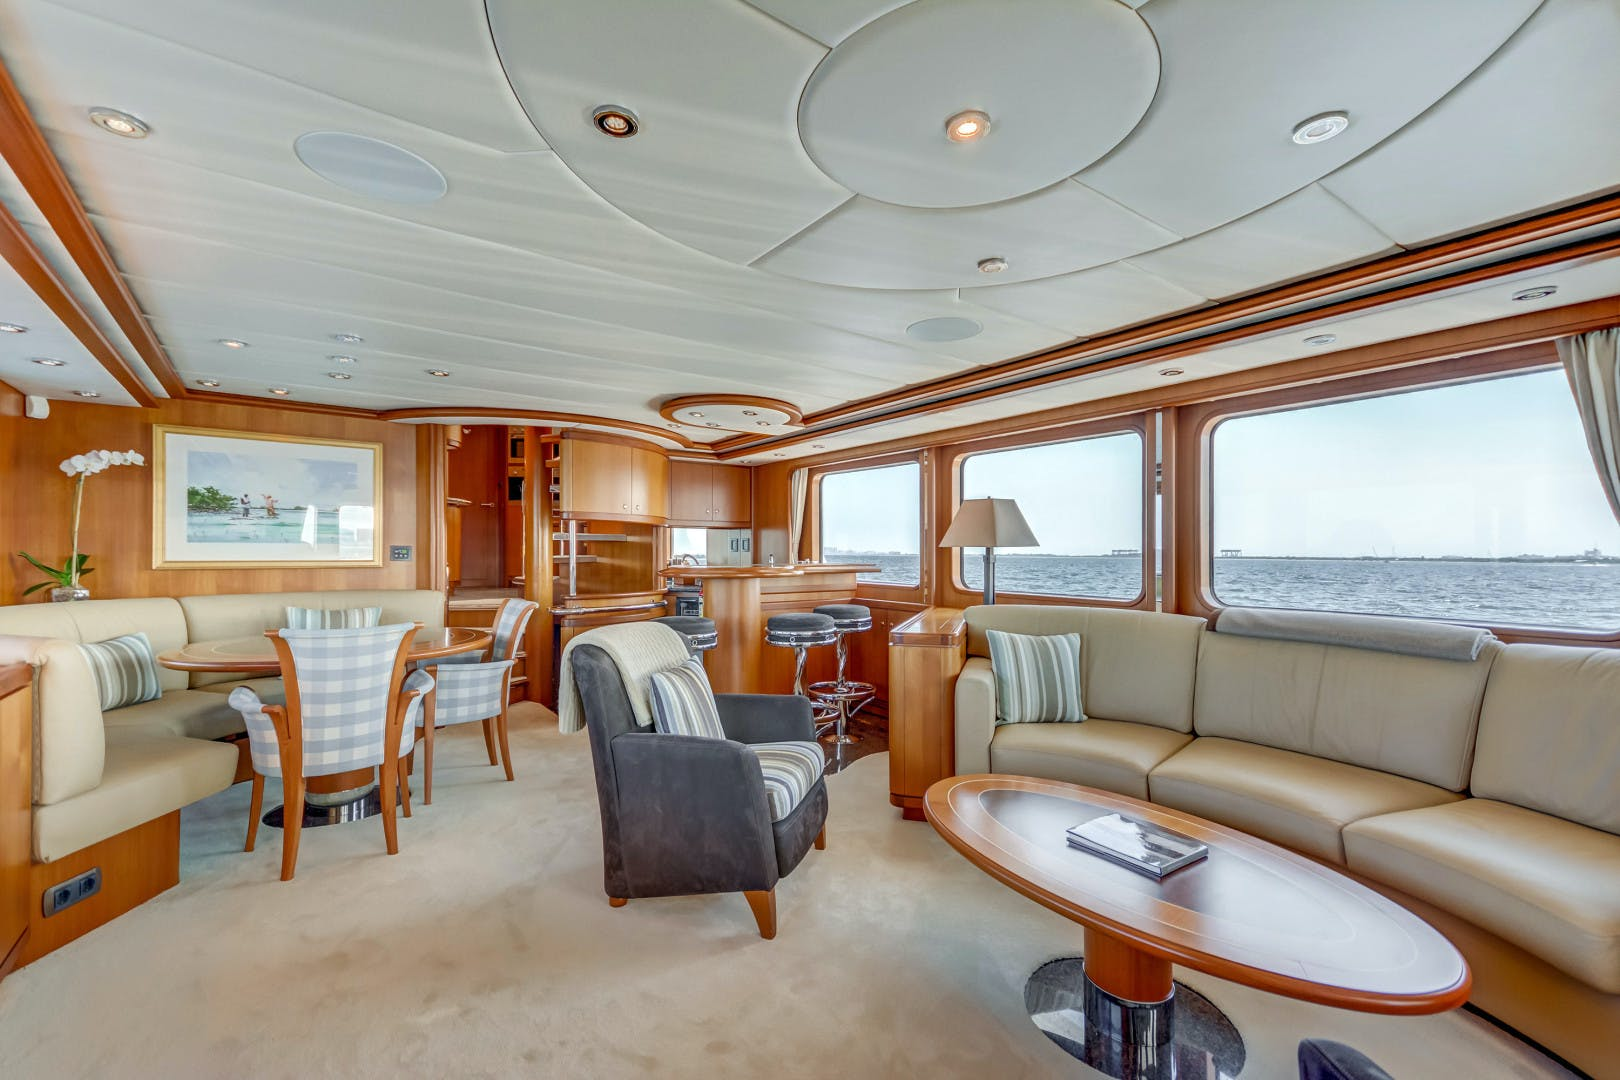 2002 Kuipers Woudsend 84' Raised Pilothouse LRC GUSTO | Picture 4 of 31